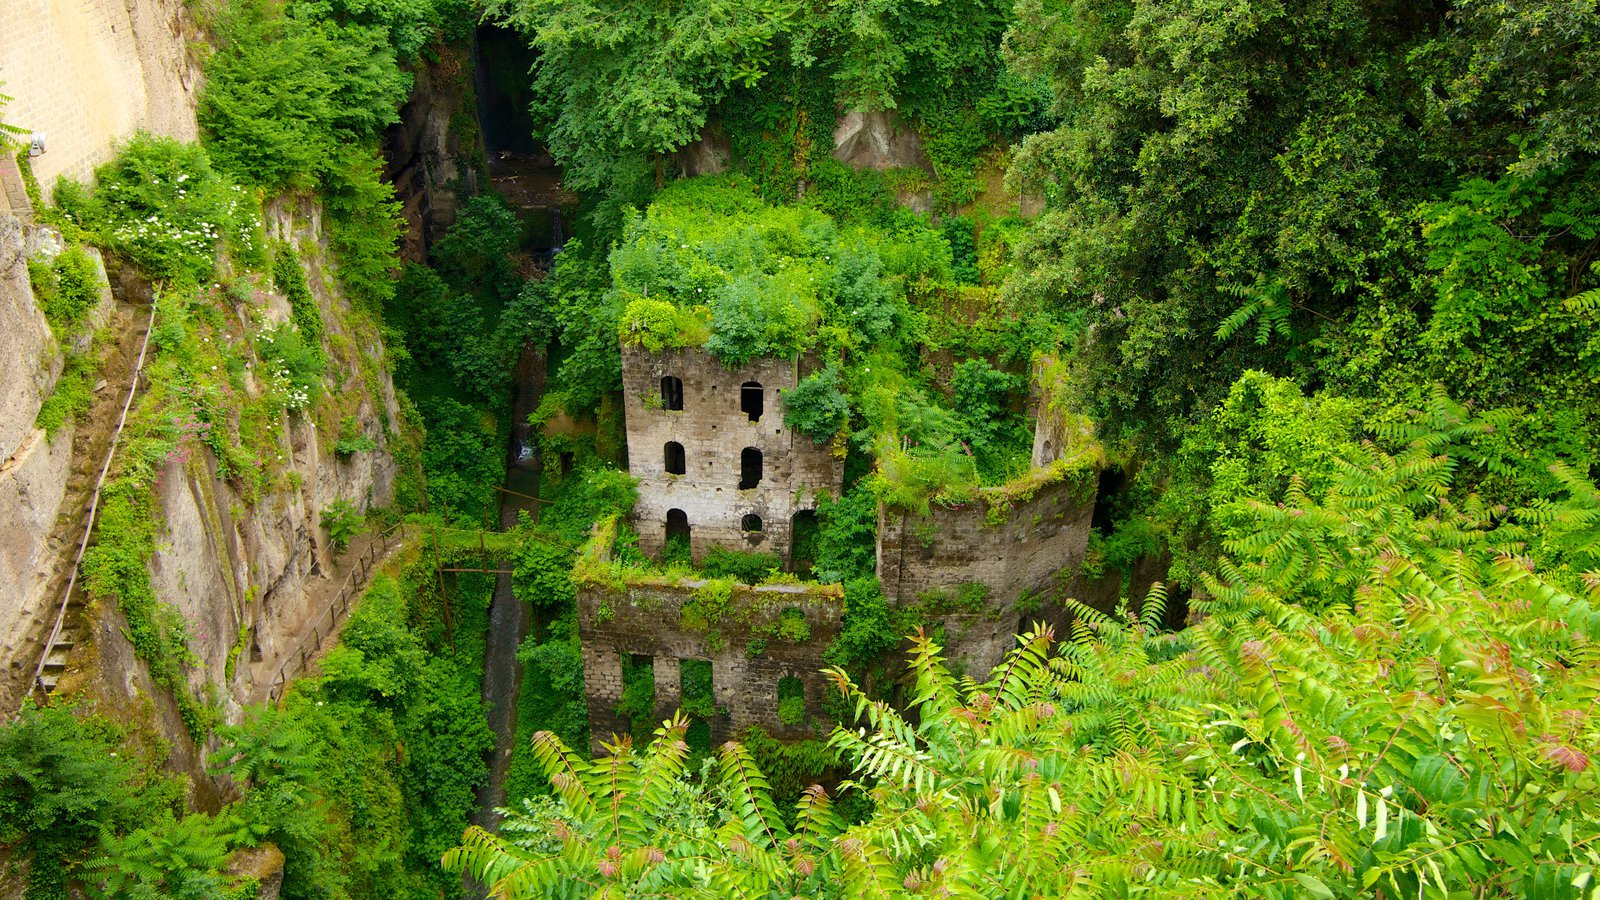 Deep Valley of the Mills which includes heritage architecture, building ruins and a garden